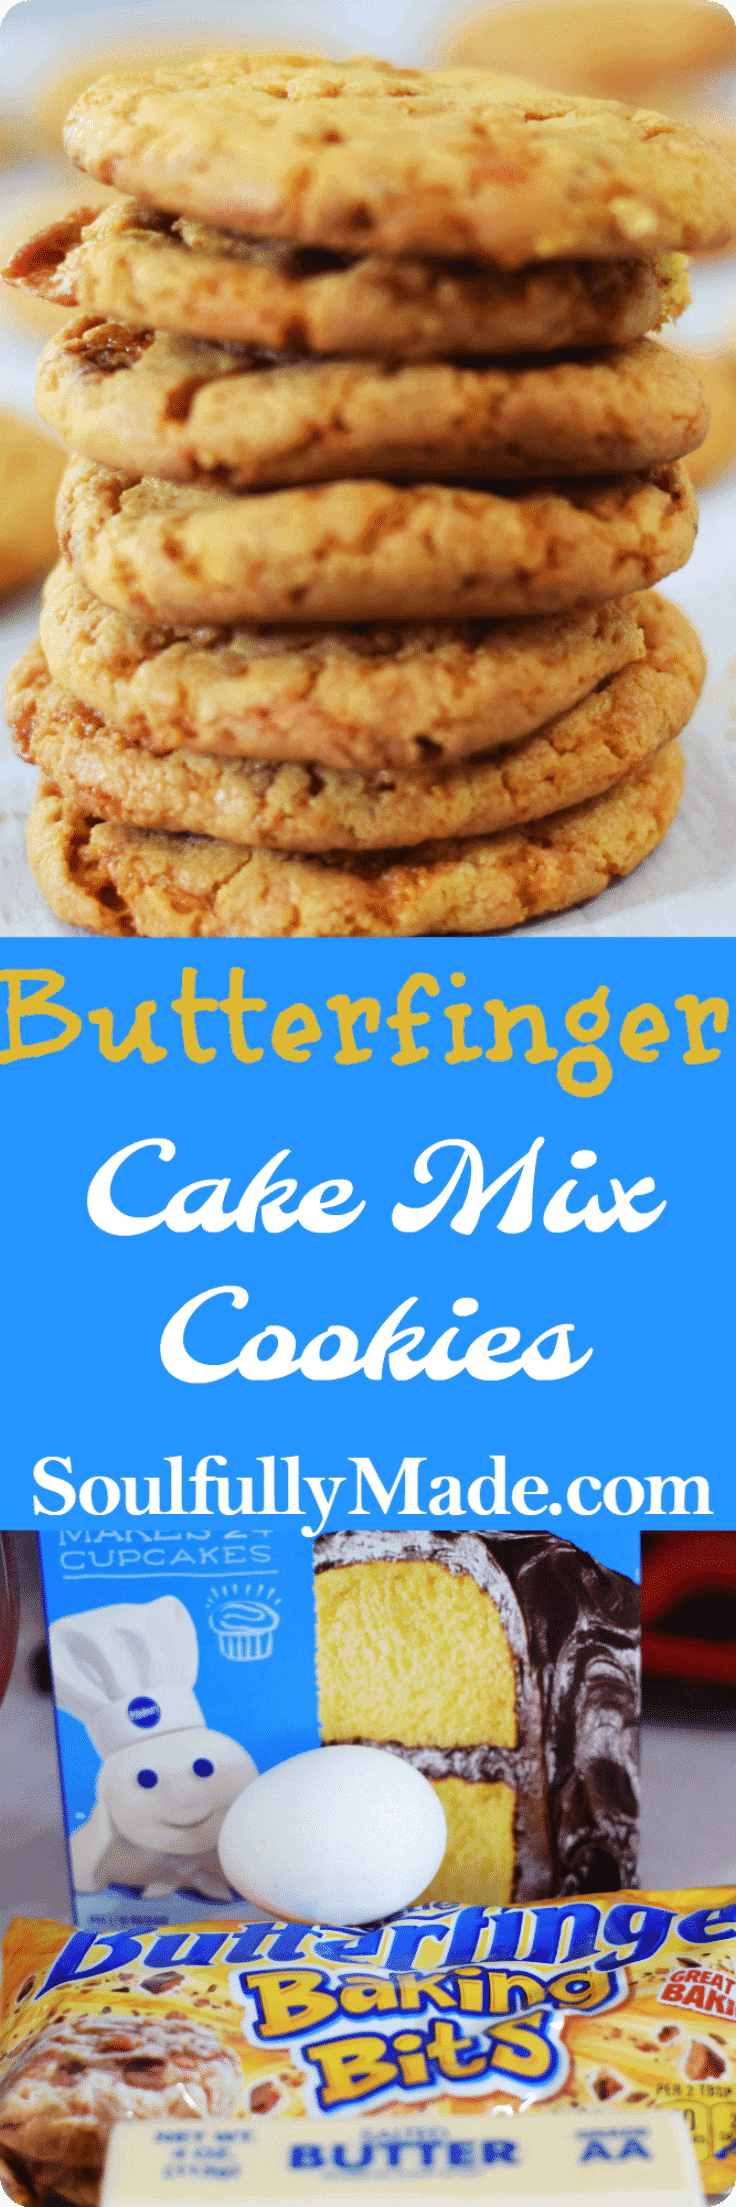 Butterfinger Cookies Made With Cake Mix